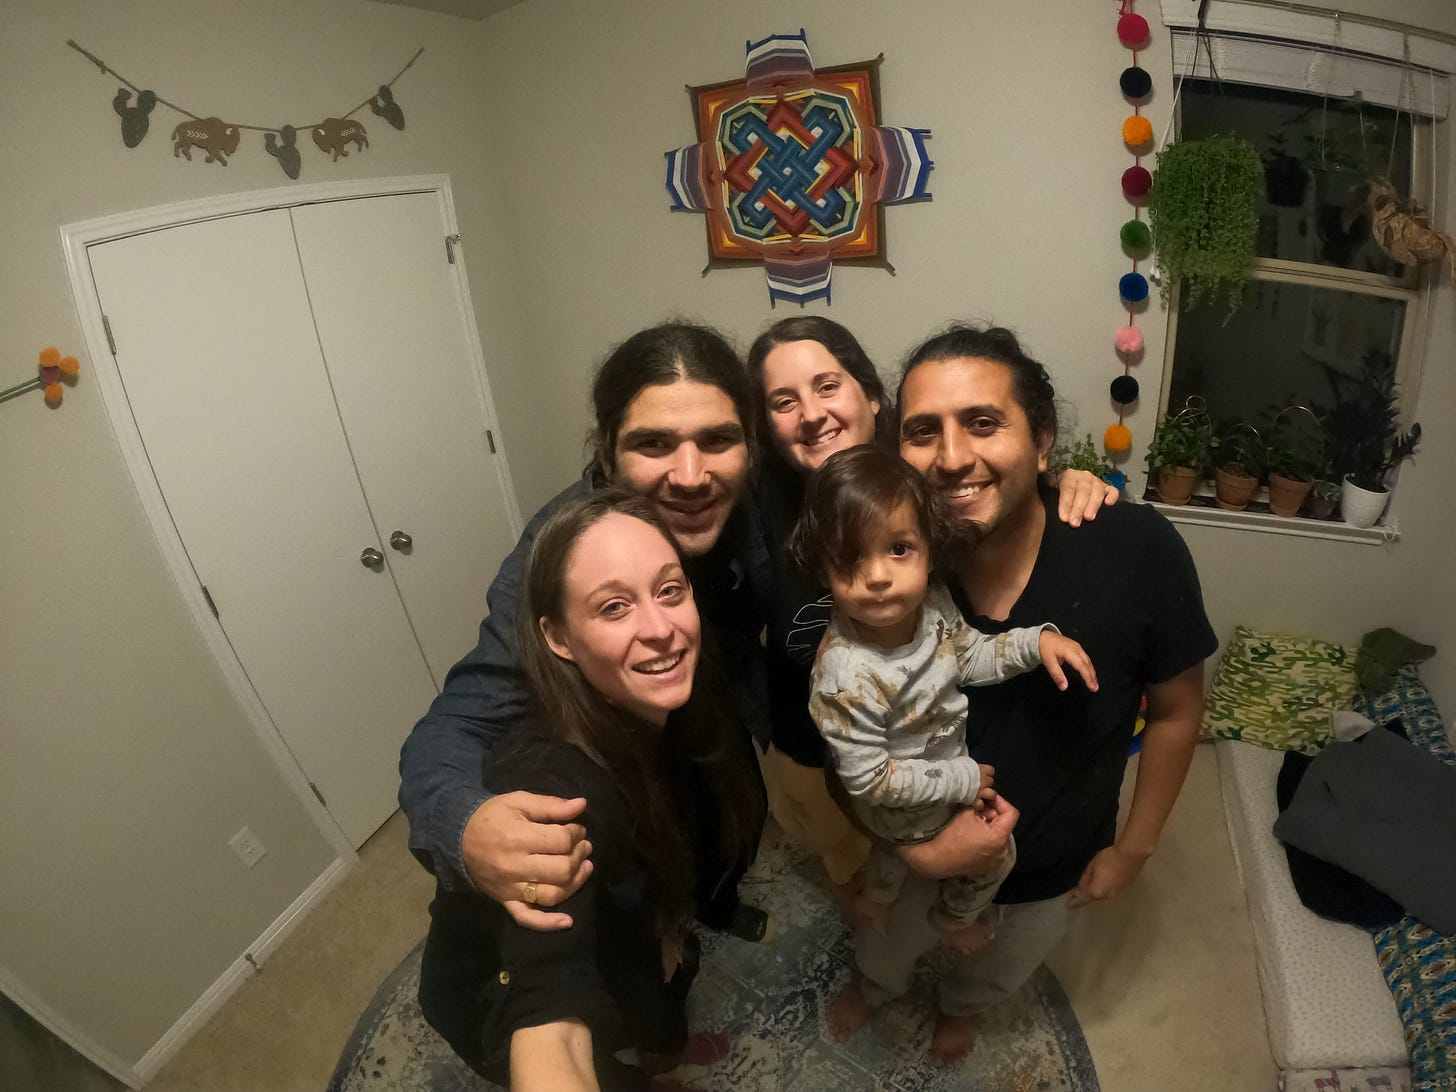 Kelly, Anthony, Raychal, Antonio, and Juaquin all selfie in the bedroom